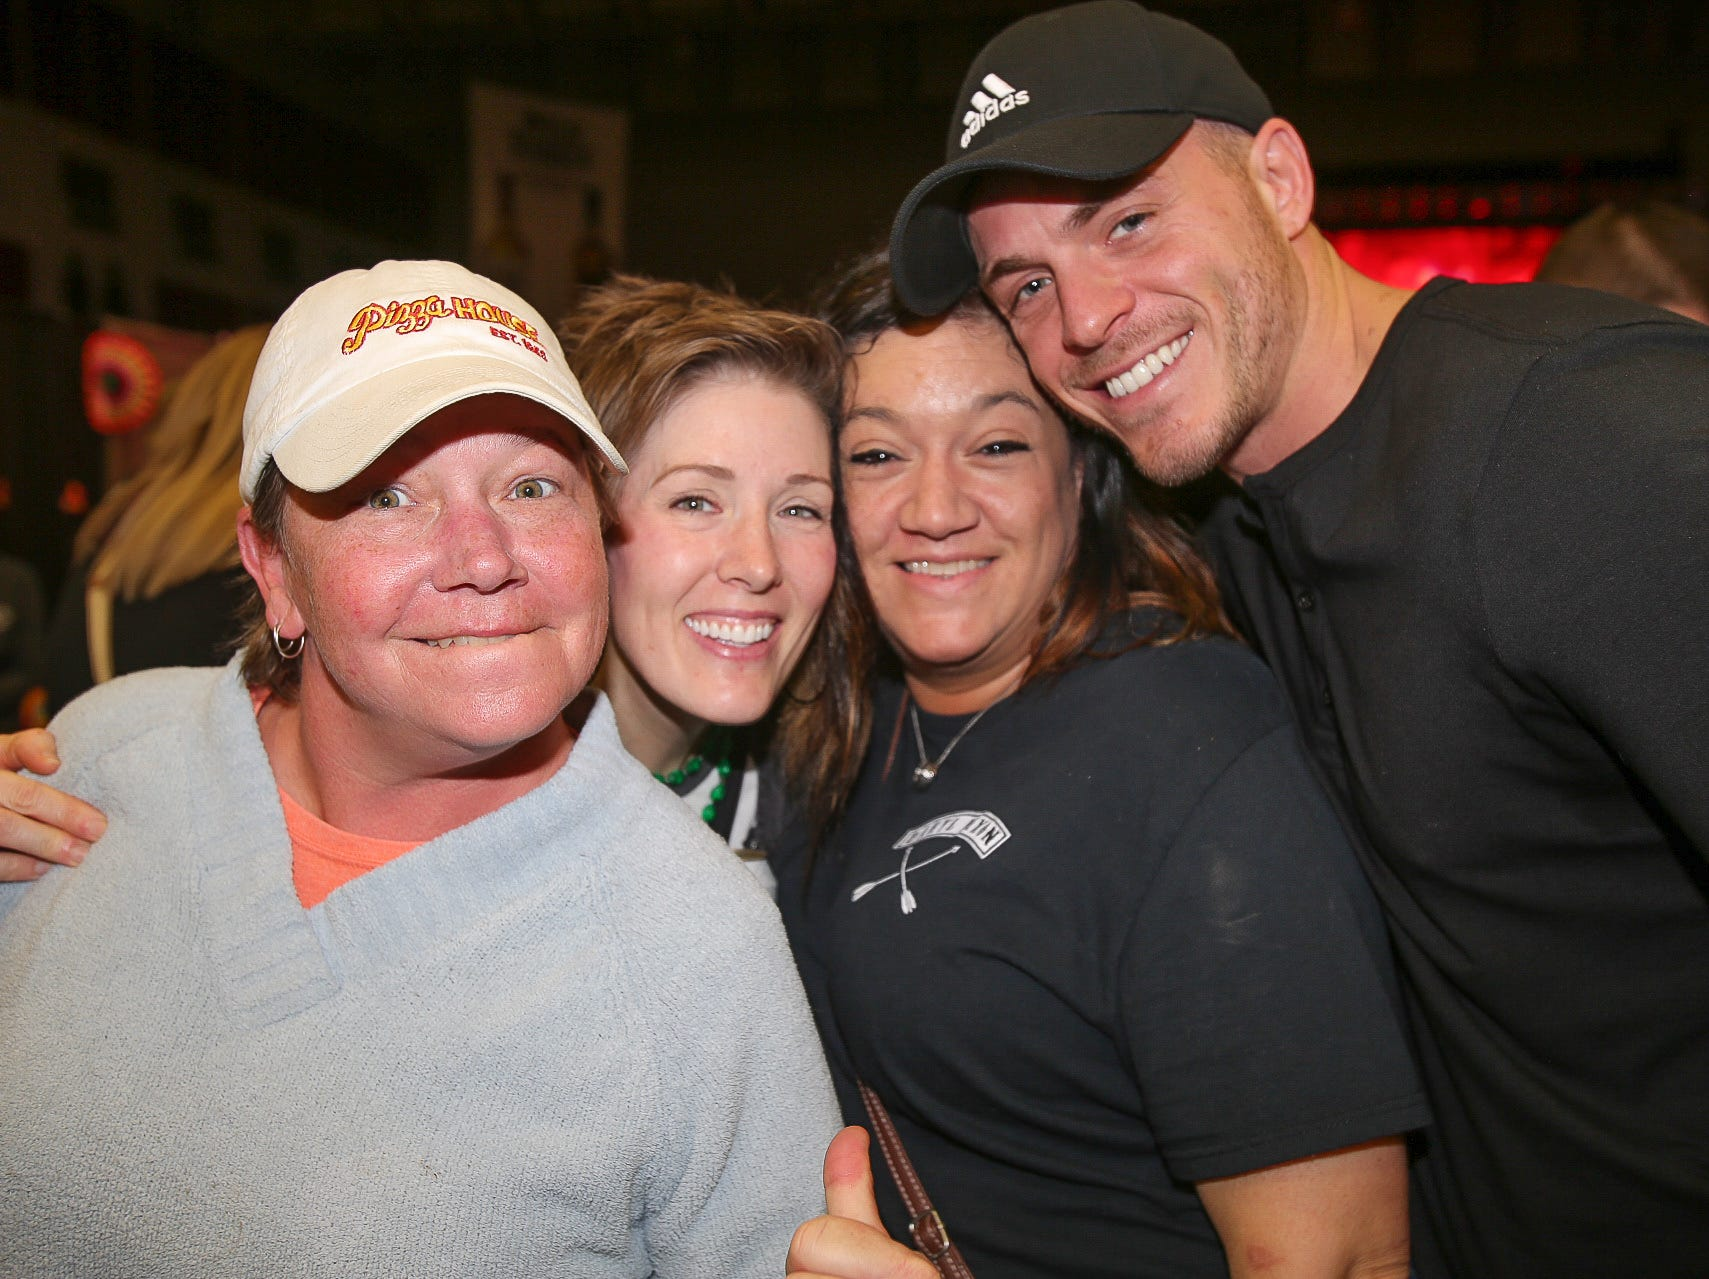 Stacy Schnieder, Michelle and Tara Eiken, and Eric Wadkins